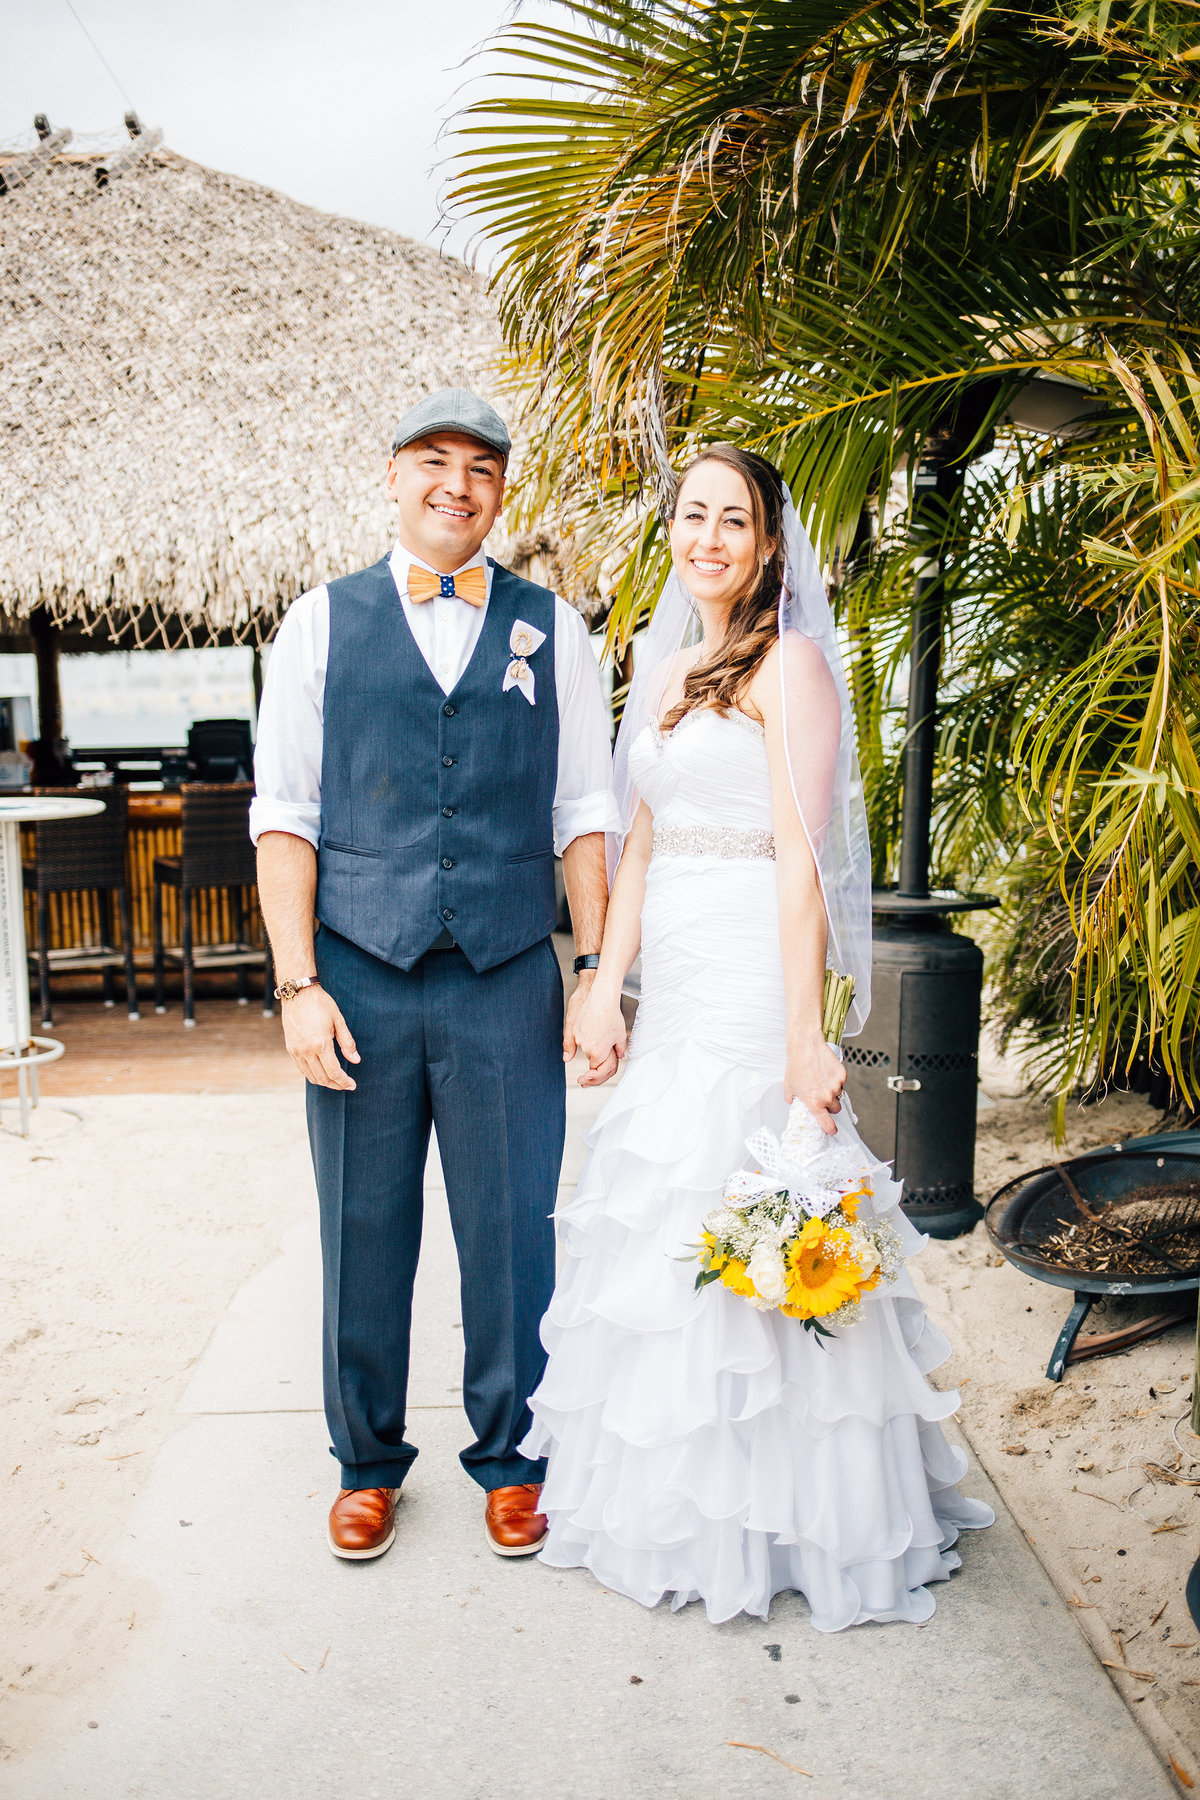 Kimberly_Hoyle_Photography_Marrero_Millikens_Reef_Wedding-66